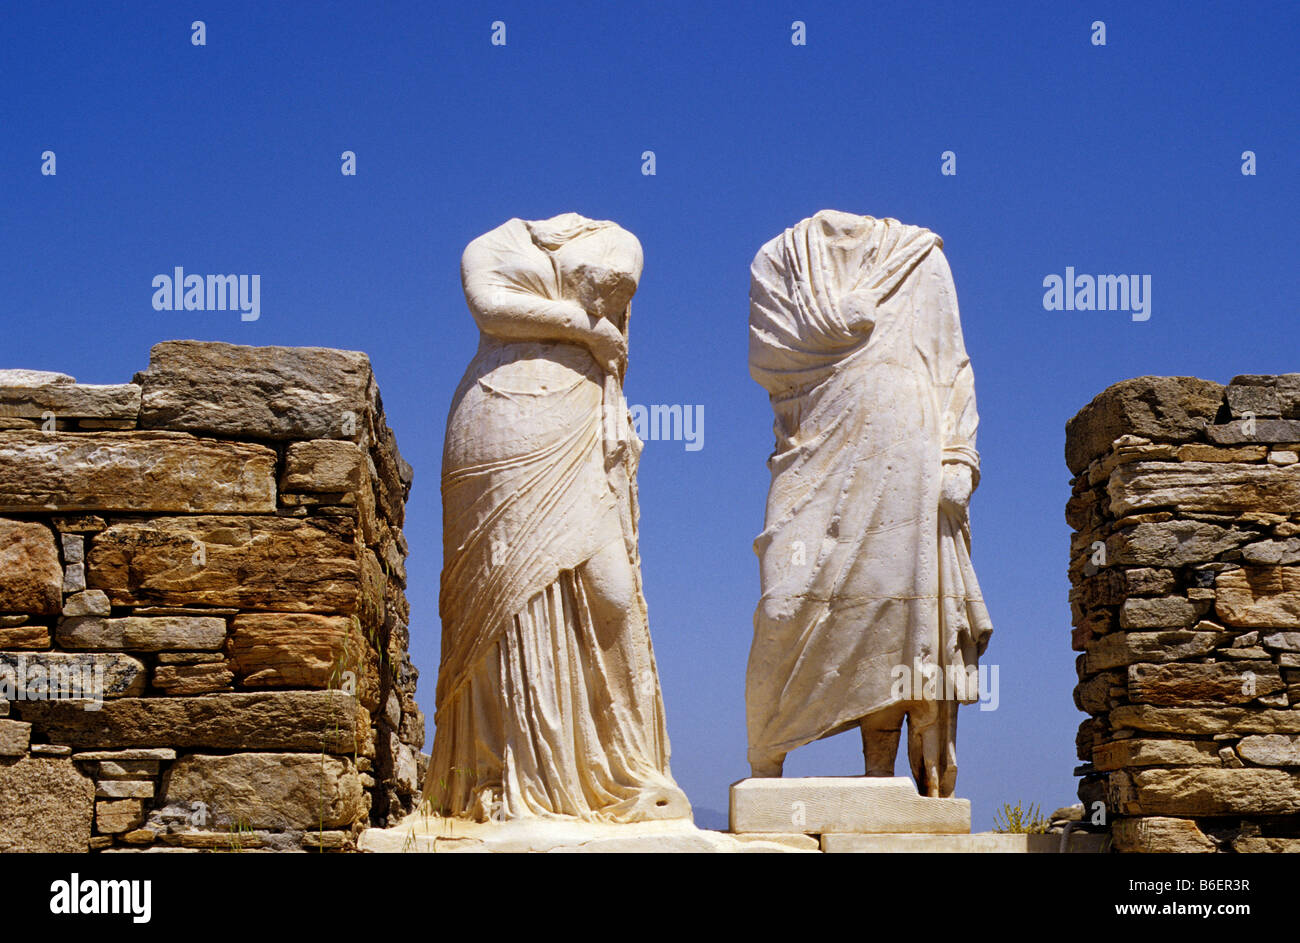 Antique Statues Without Heads On The Island Of Delos Greece Europe